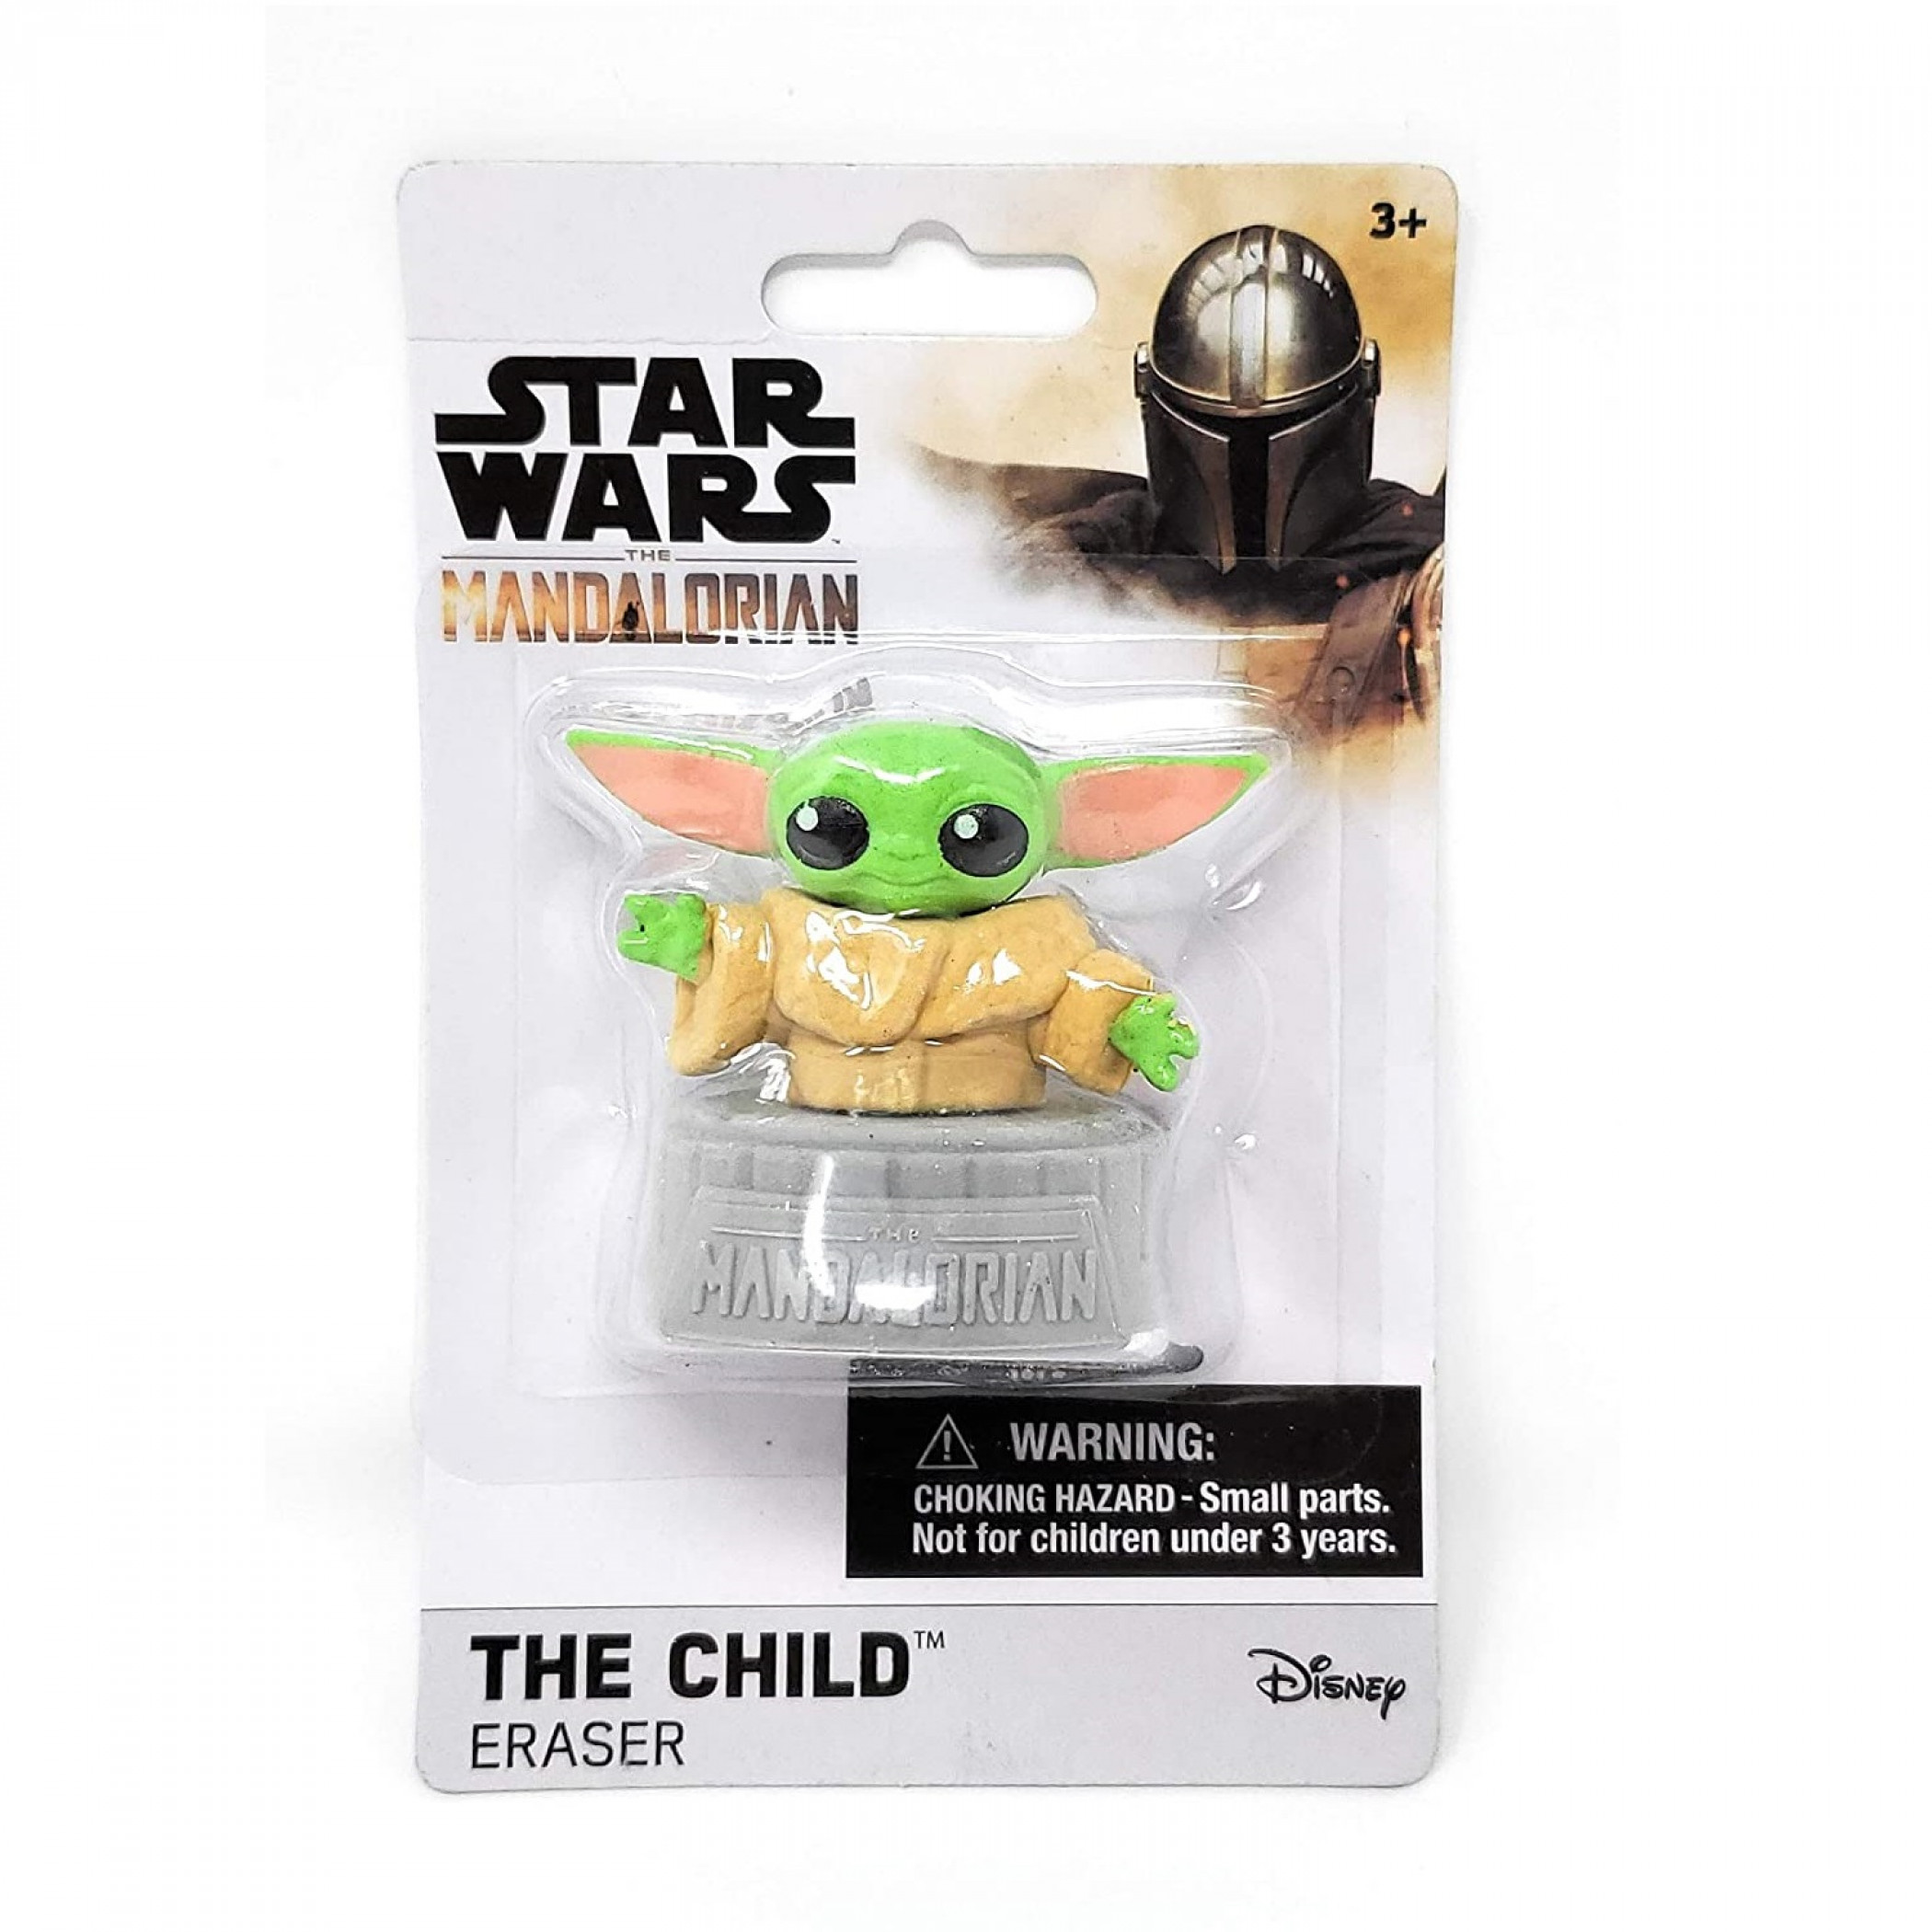 Star Wars The Child from The Mandalorian 3D Eraser